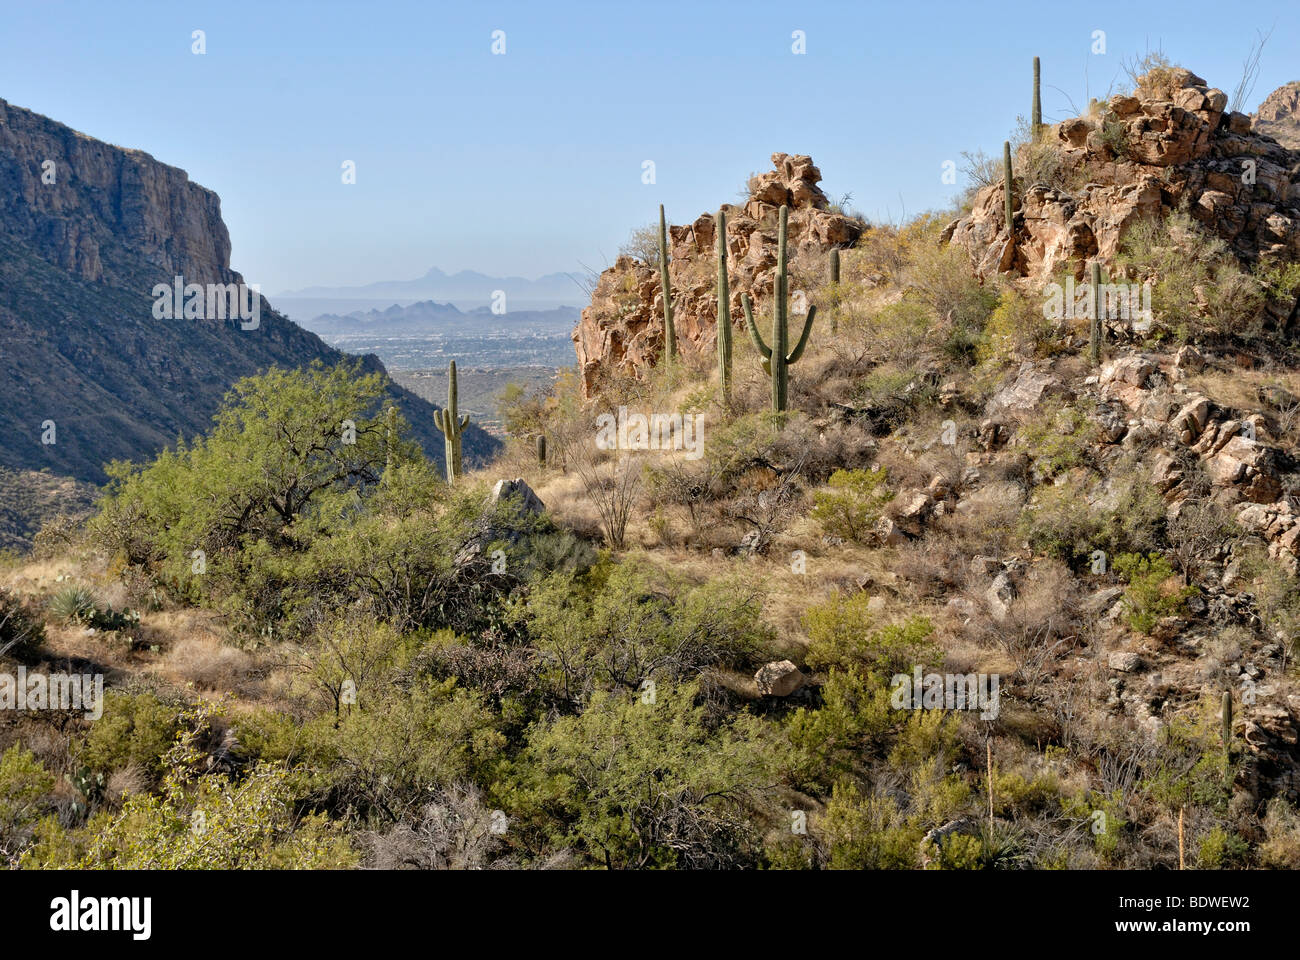 View from the high altitude hiking path in Sabino Canyon on parts of the city of Tucson, Arizona, USA - Stock Image